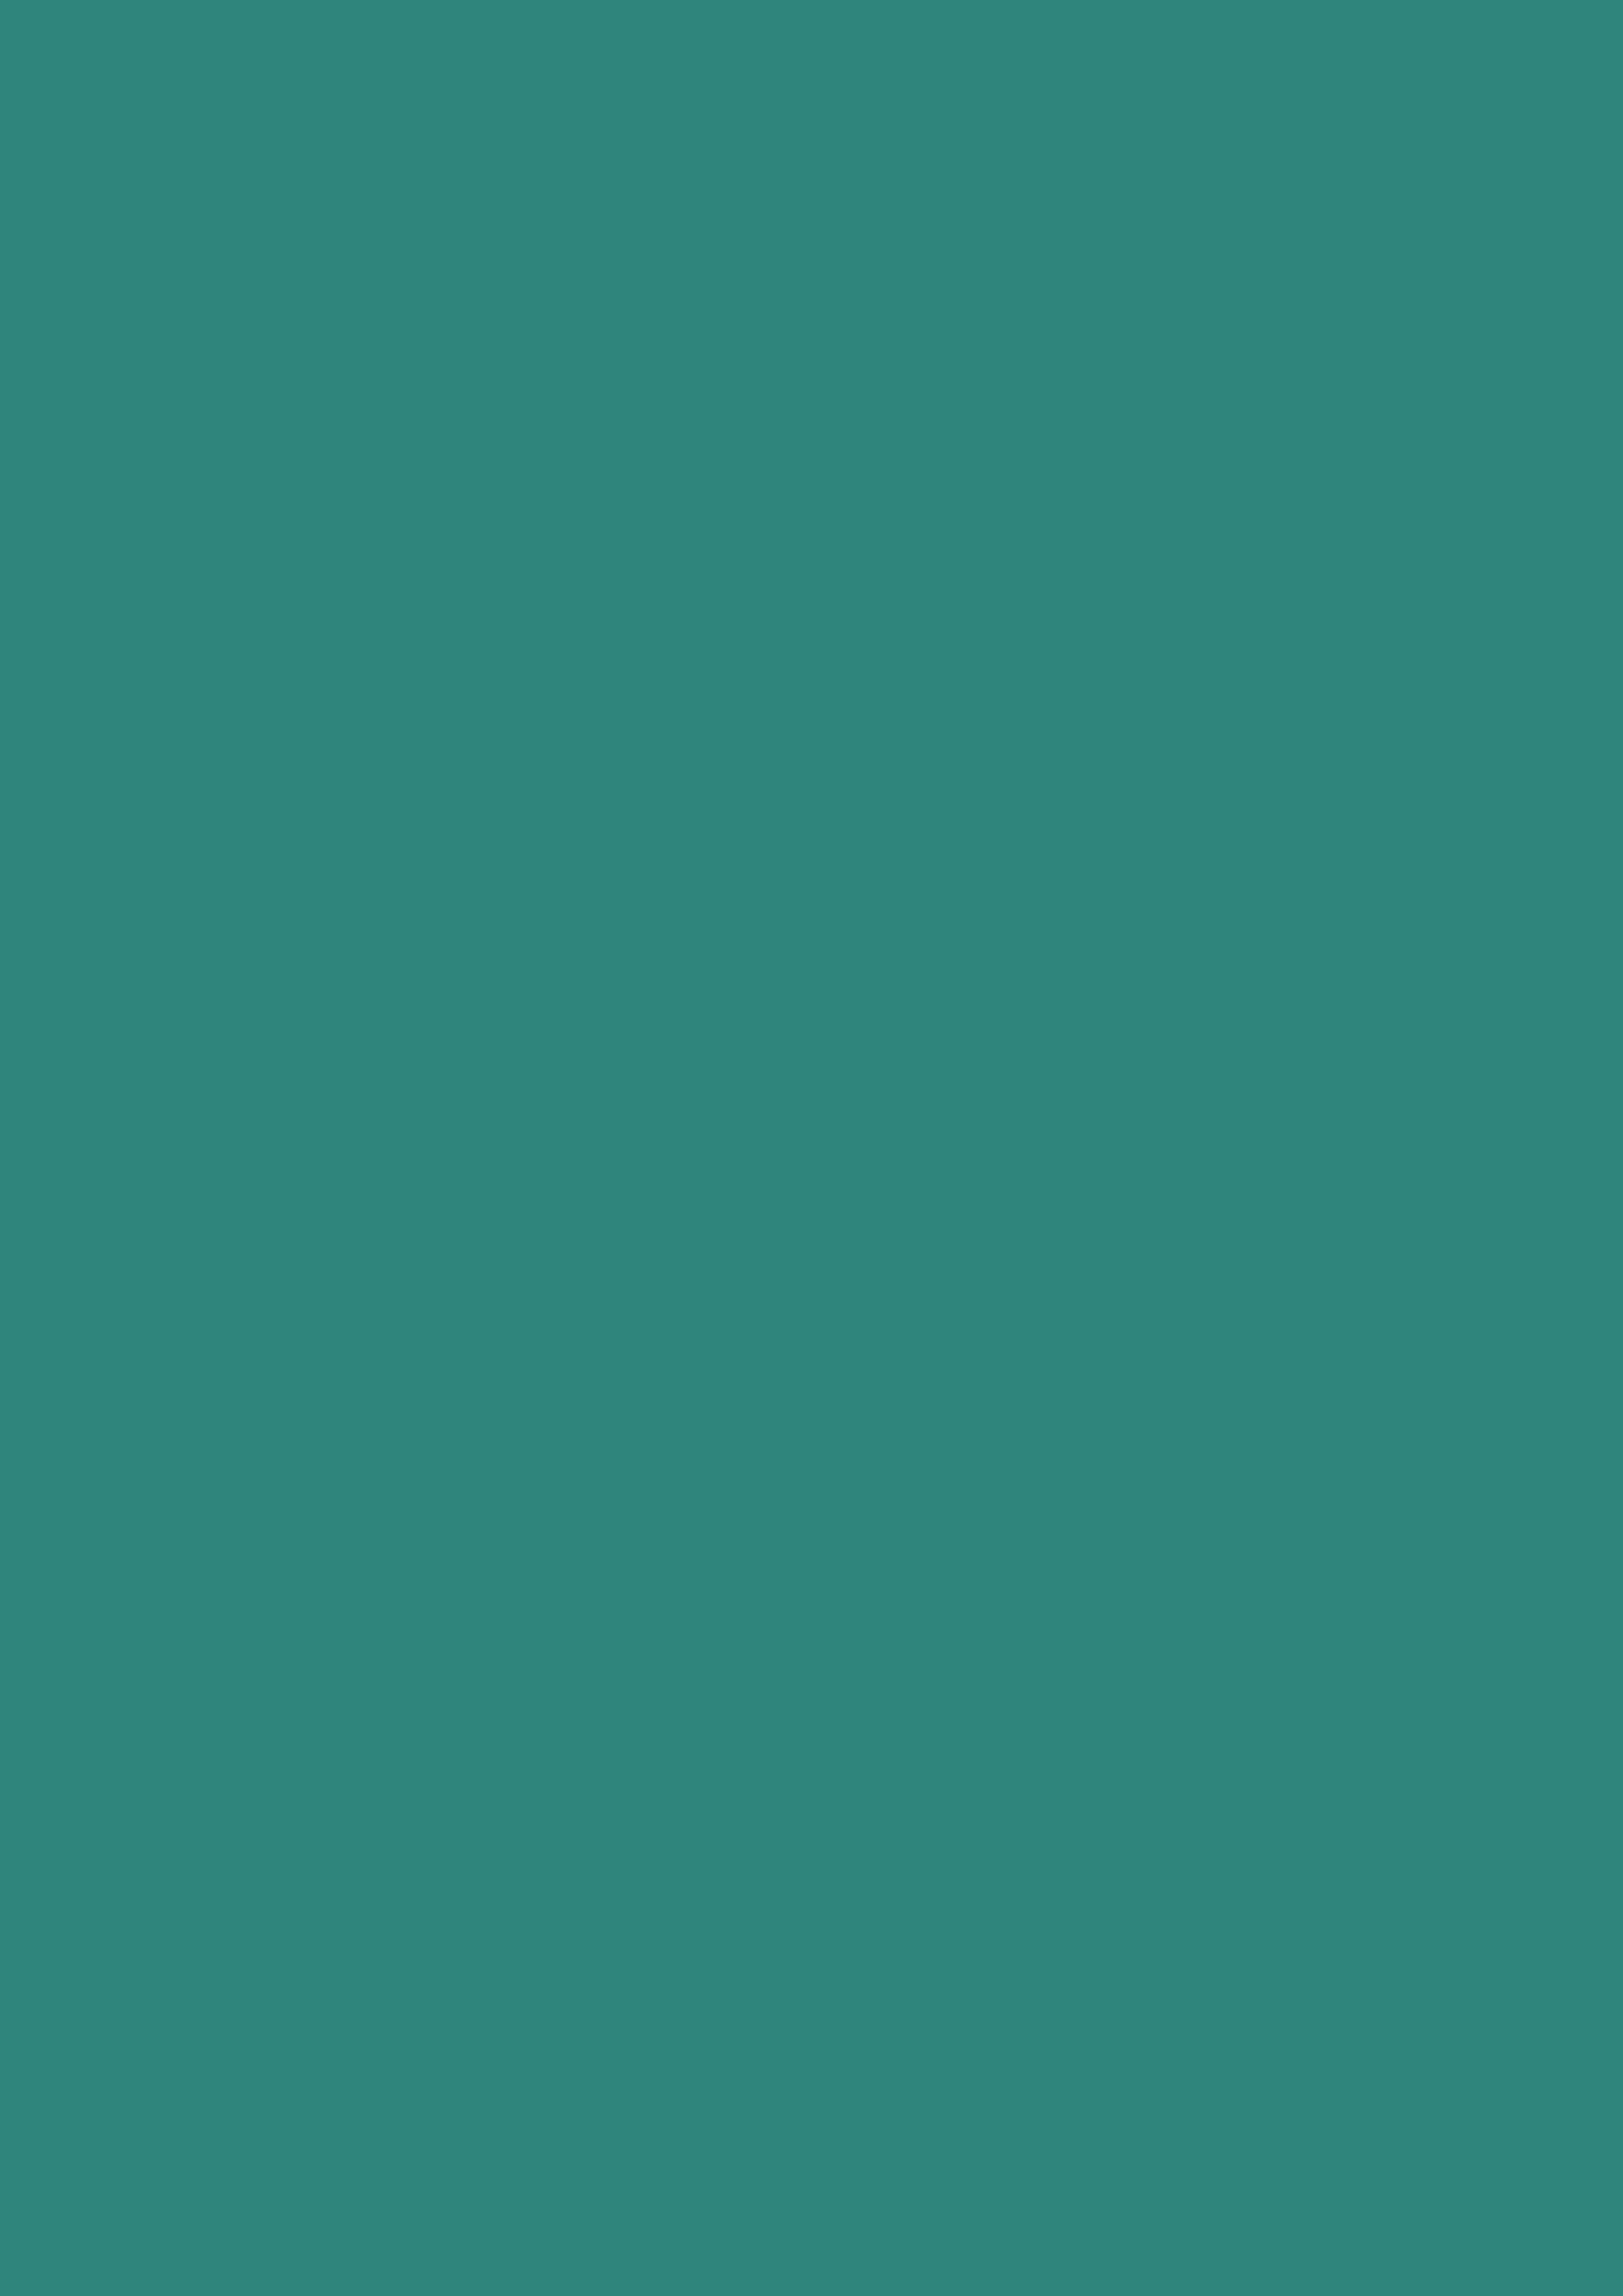 2480x3508 Celadon Green Solid Color Background